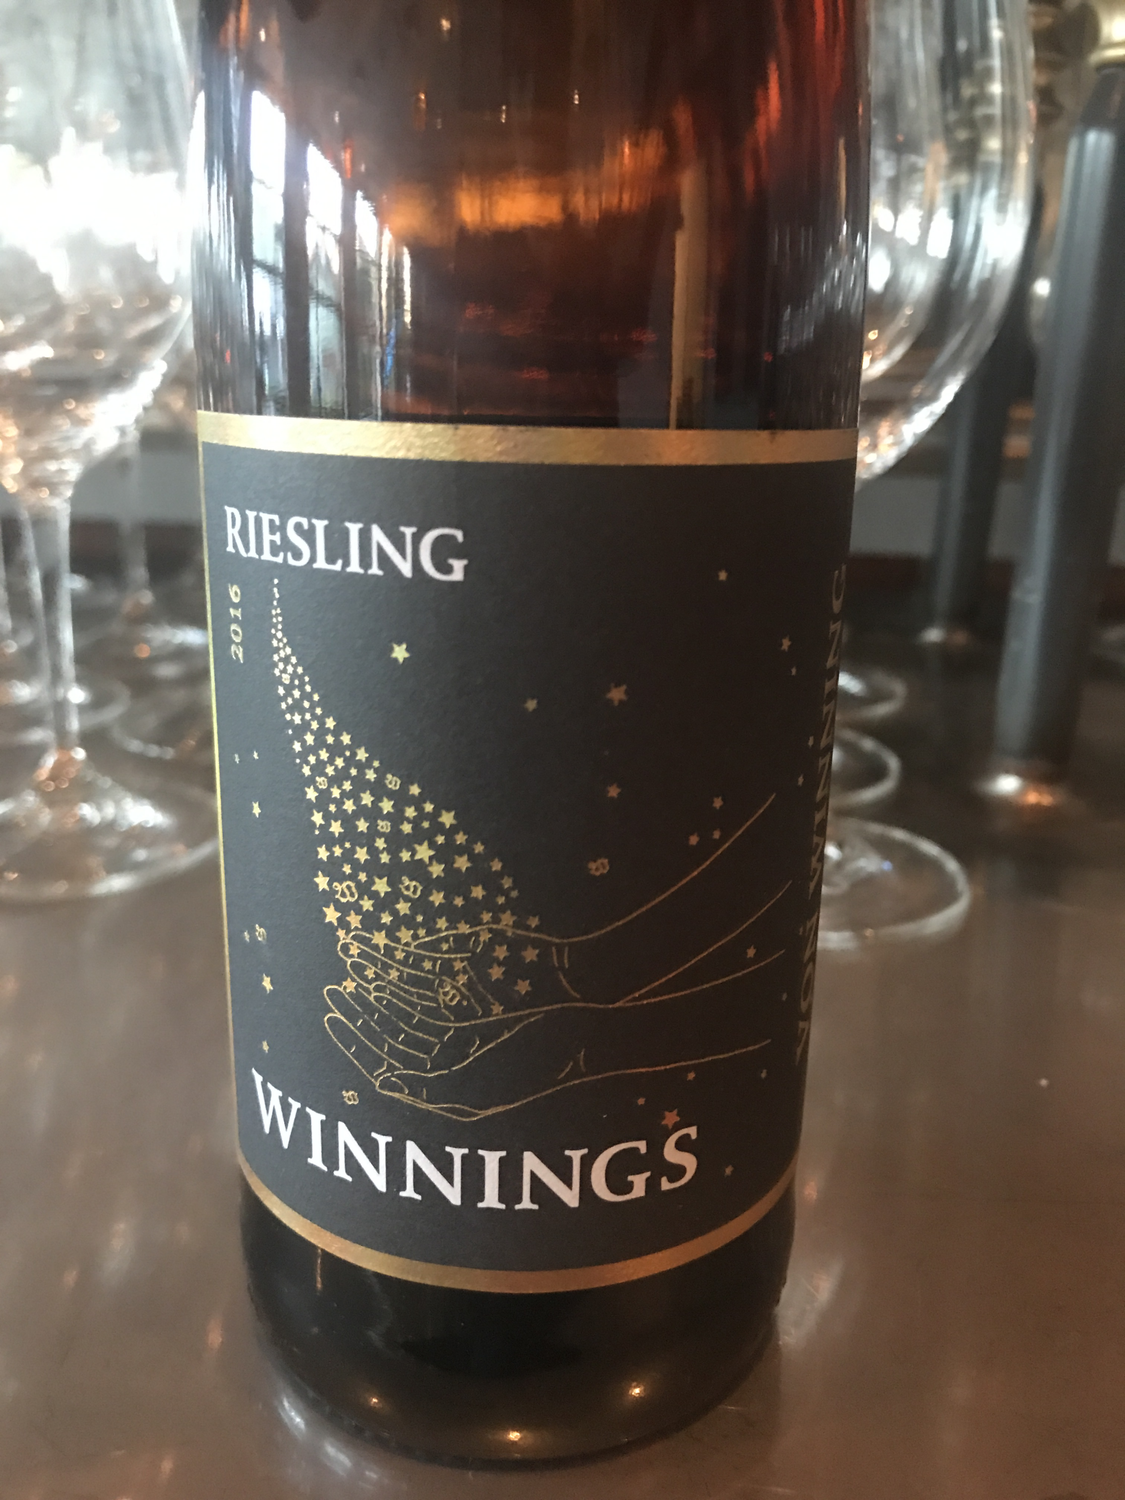 Von Winning Winnings Riesling